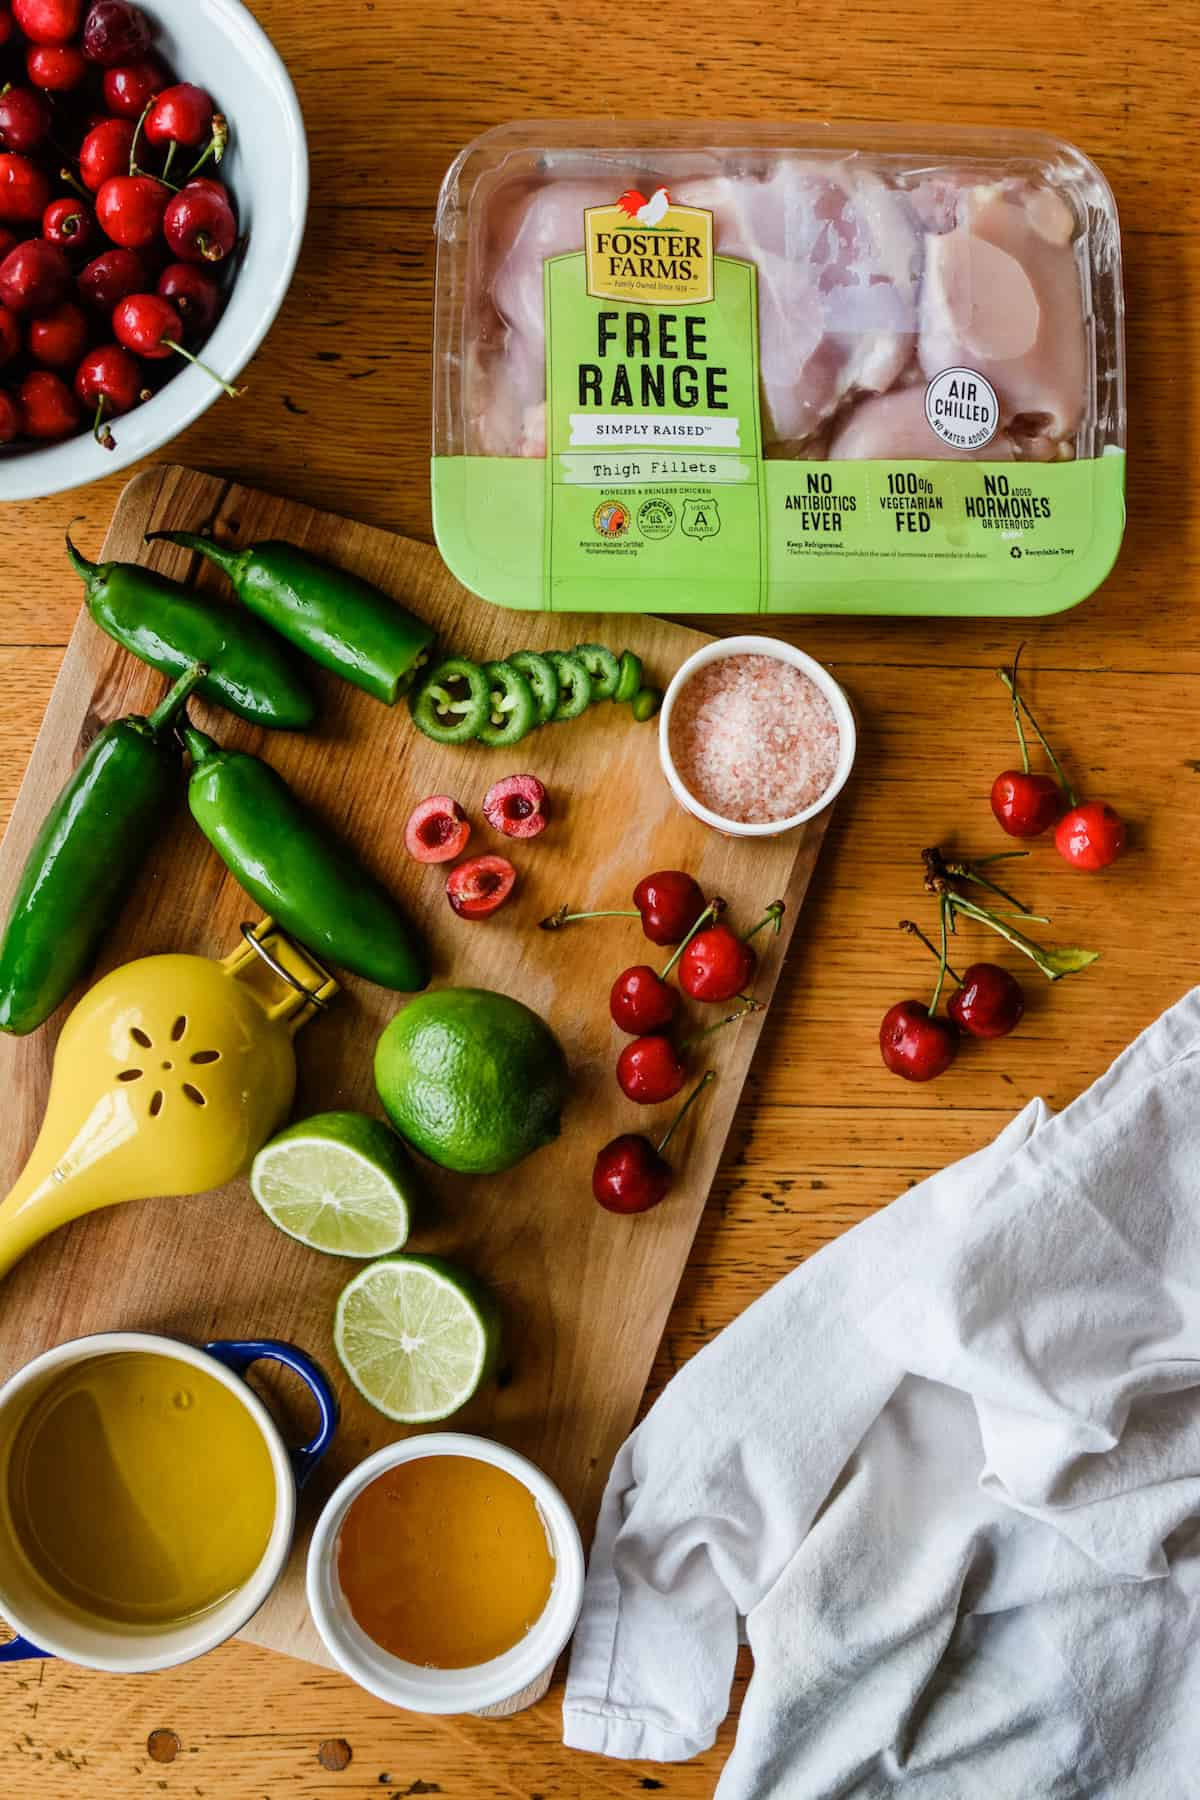 Ingredients to make jalapeno chicken. A bowl of cherries sitting on a wooden table next to a package of chicken and a cutting board.